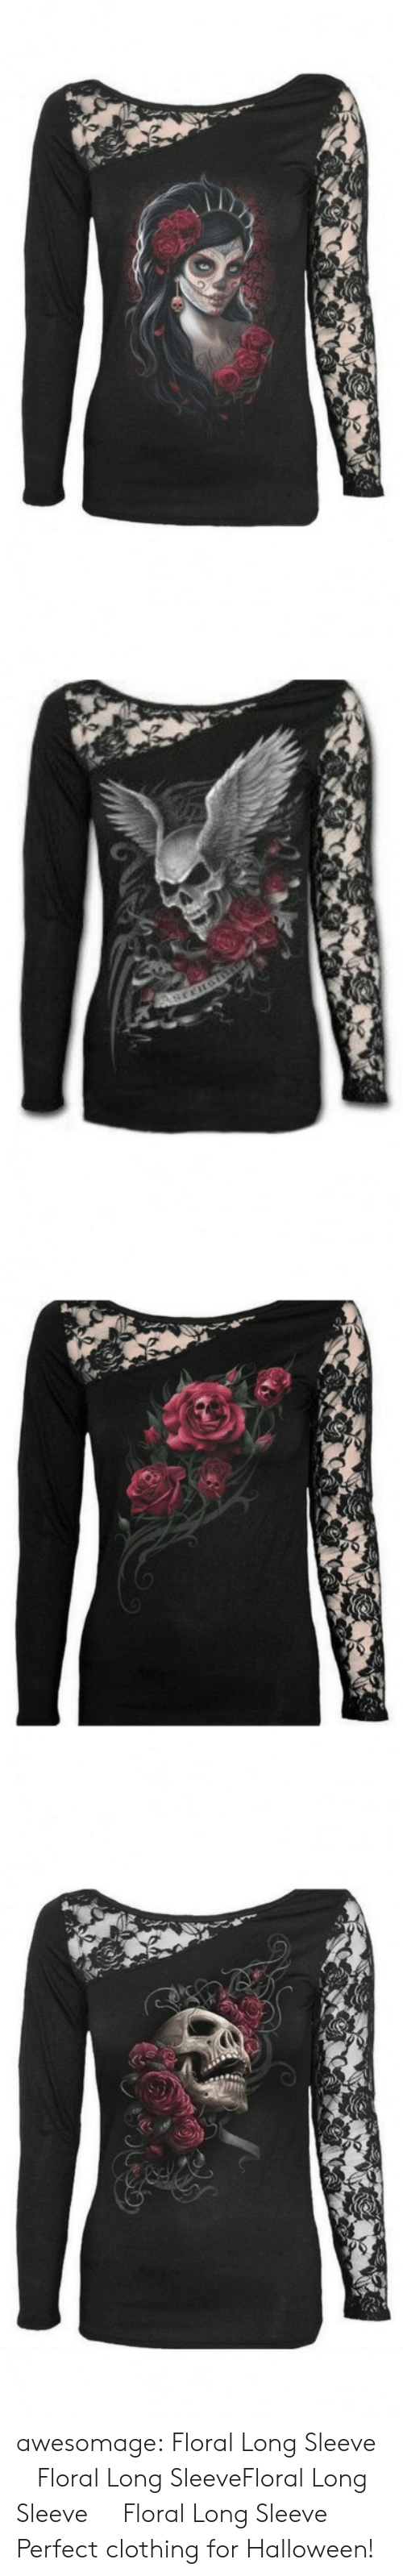 tshirt: awesomage: Floral Long Sleeve  Floral Long SleeveFloral Long Sleeve  Floral Long Sleeve   Perfect clothing for Halloween!